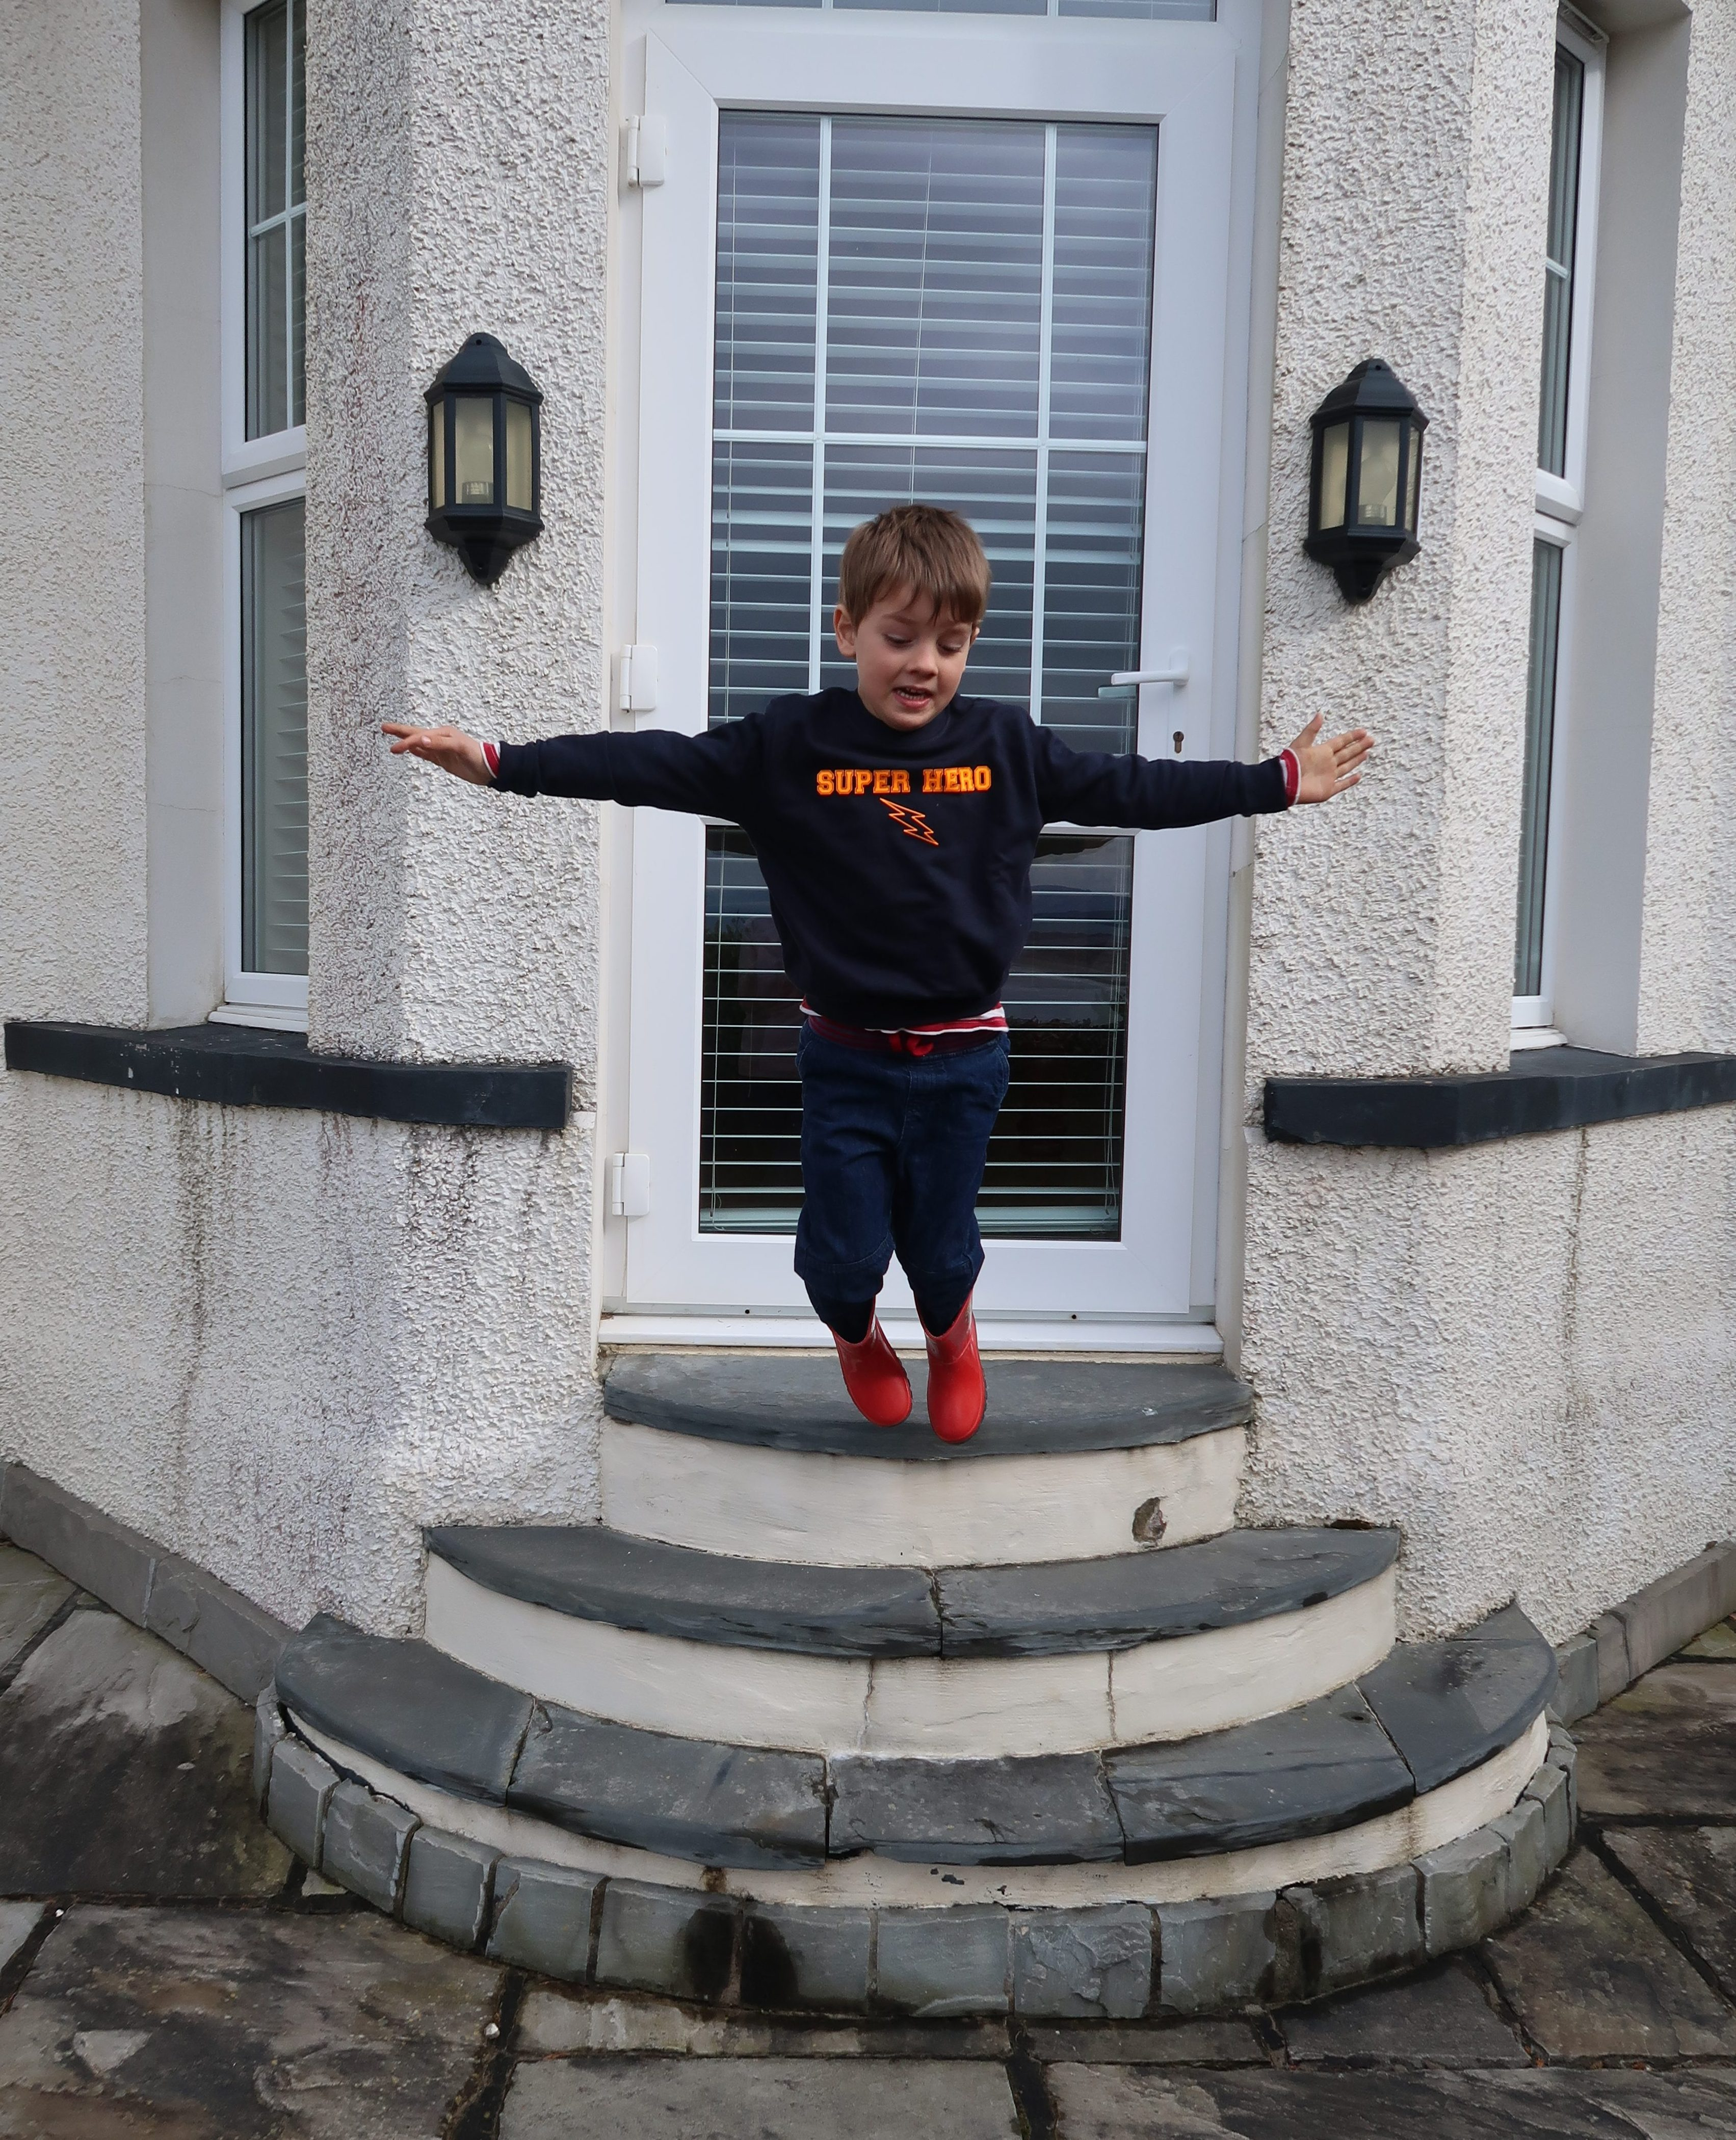 My son is in a dark blue jumper with the words super hero emblazoned across the front in neon orange, he is also wearing jeans and red wellies and the photo captures him in mid air as he jumps from the top of three slate steps leading to a door in a white house. His arms are stretched out to either side and he's looking down and away from the camera as he prepares to land.